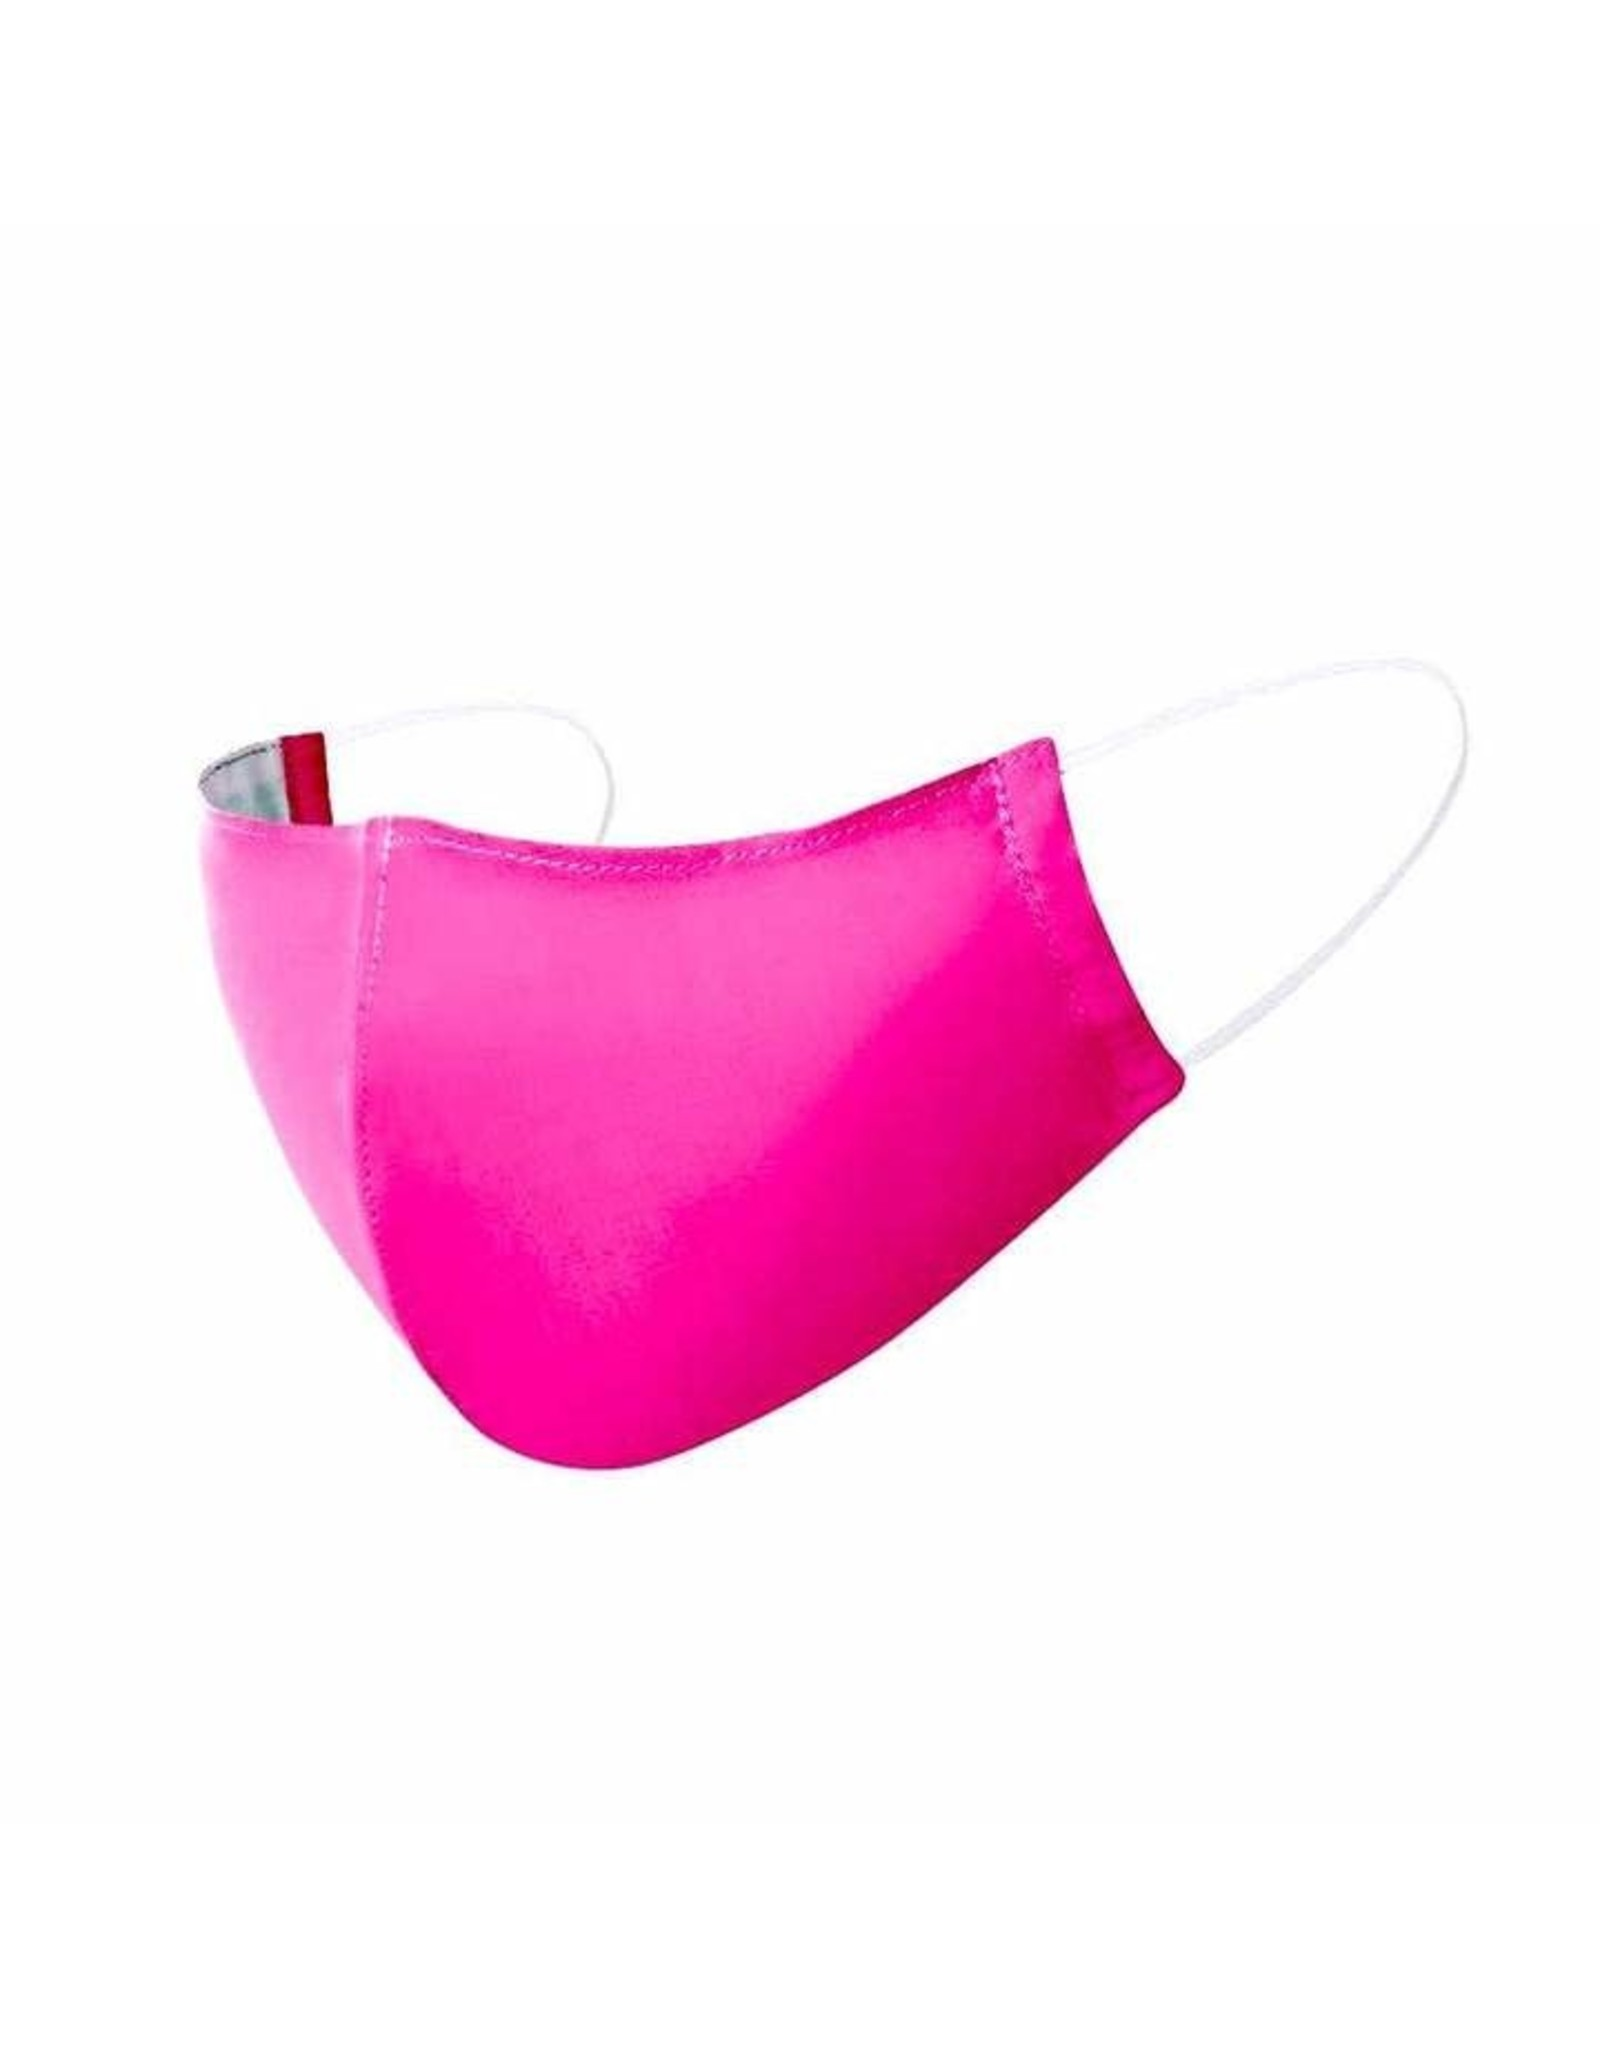 Cotton Mask w/ Filter, Pink (2 KIDS Sizes)